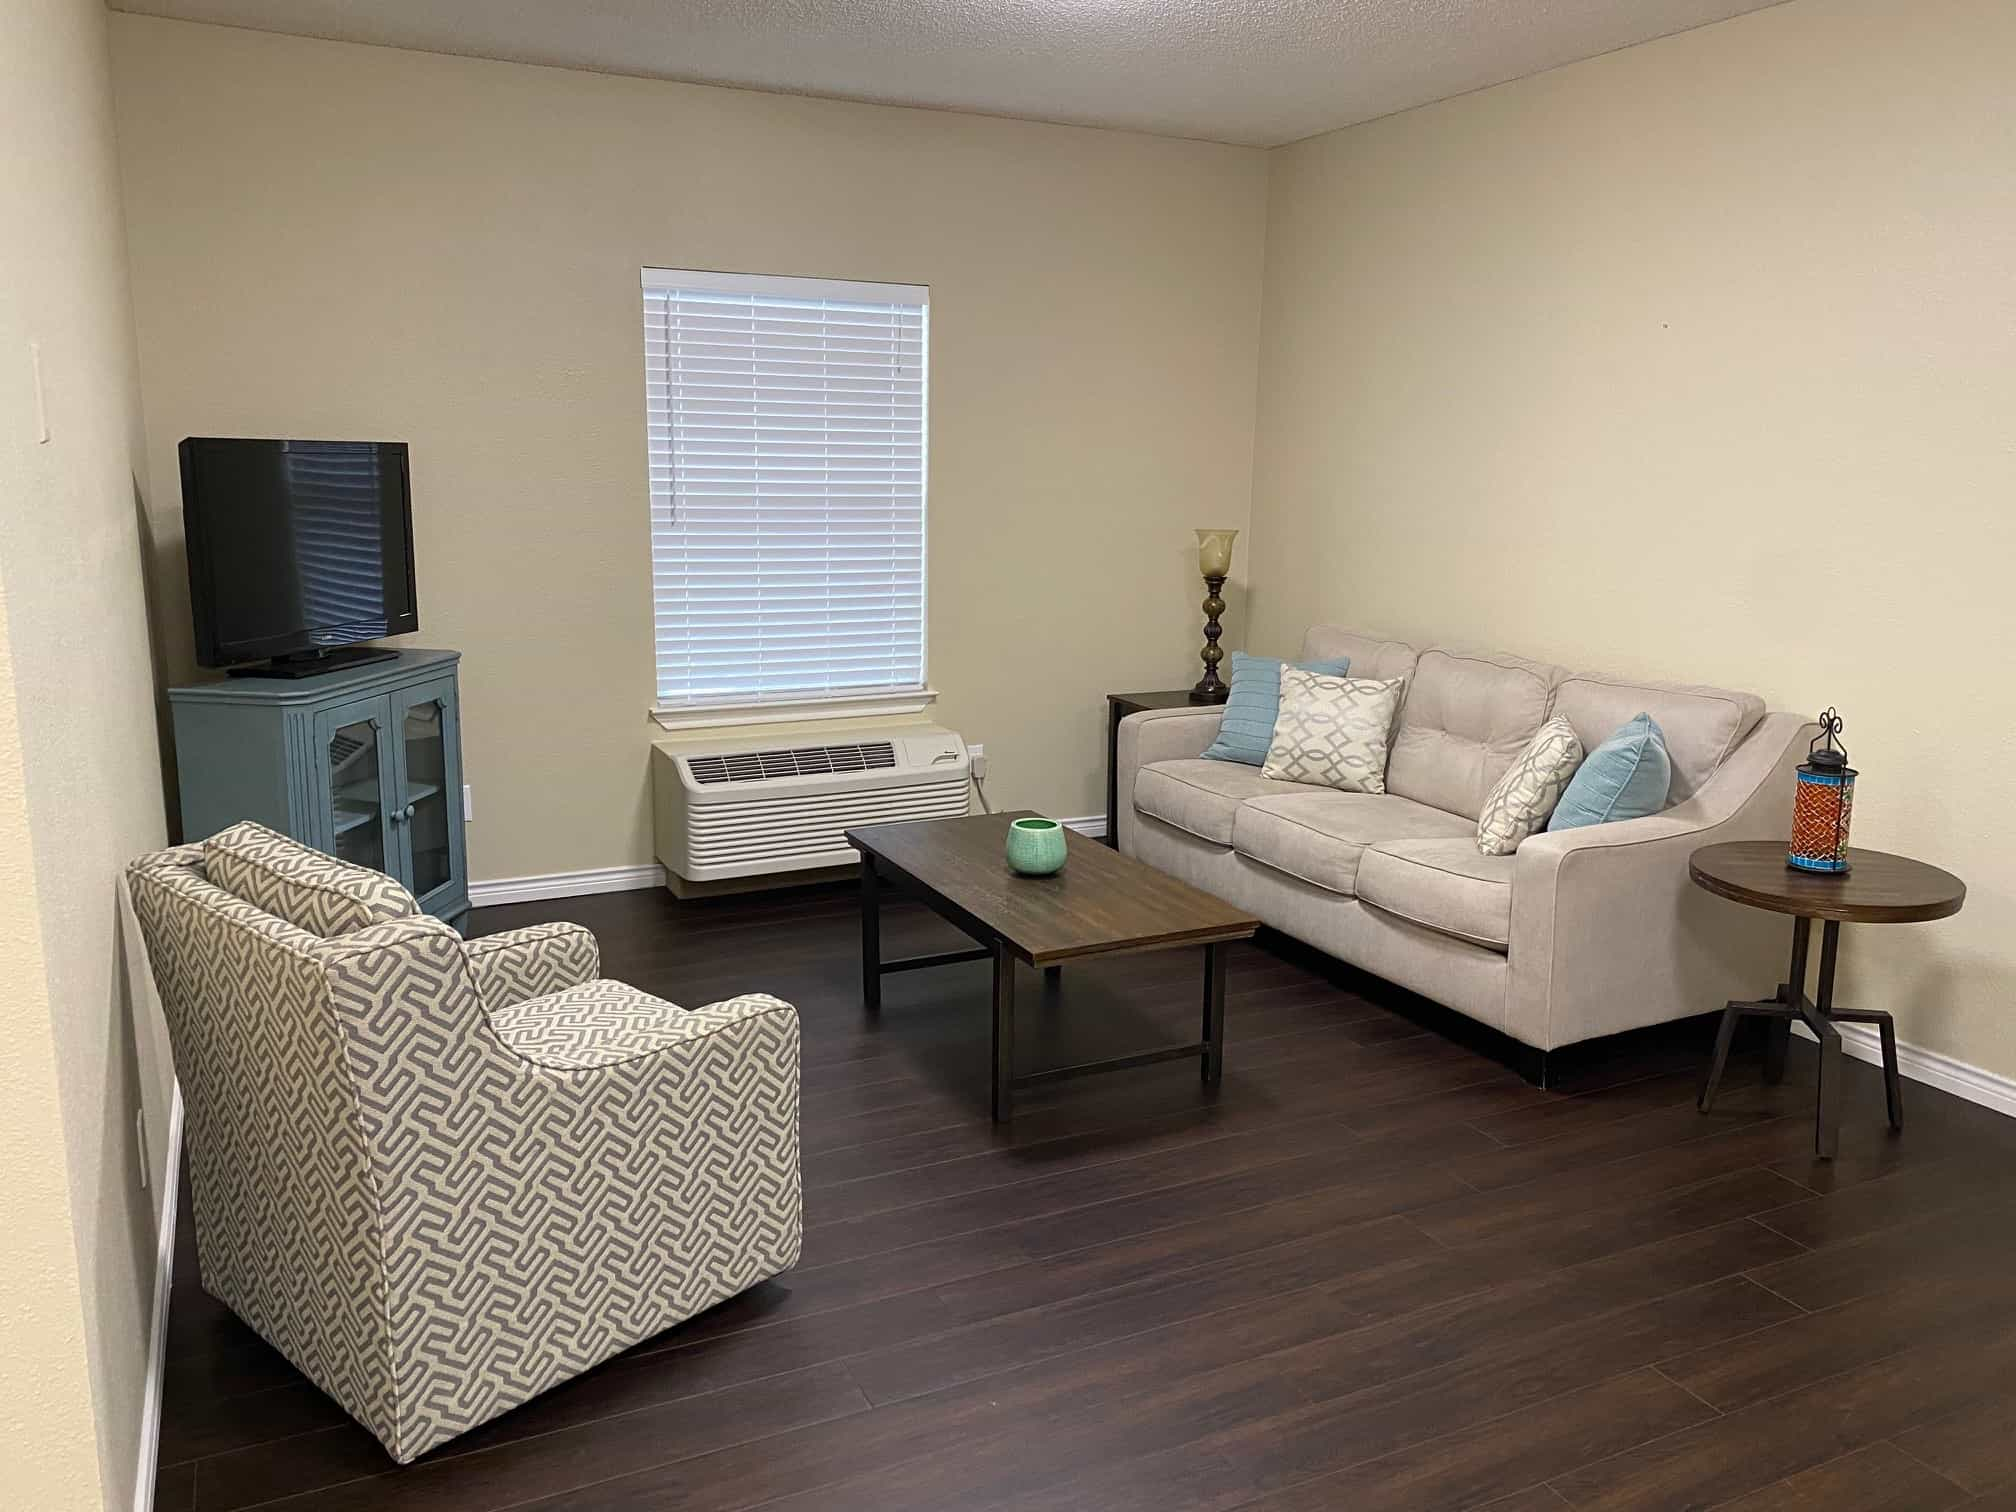 living room in a senior apartment at the waterford at ironbridge, a senior living community located in Springfield, Missouri